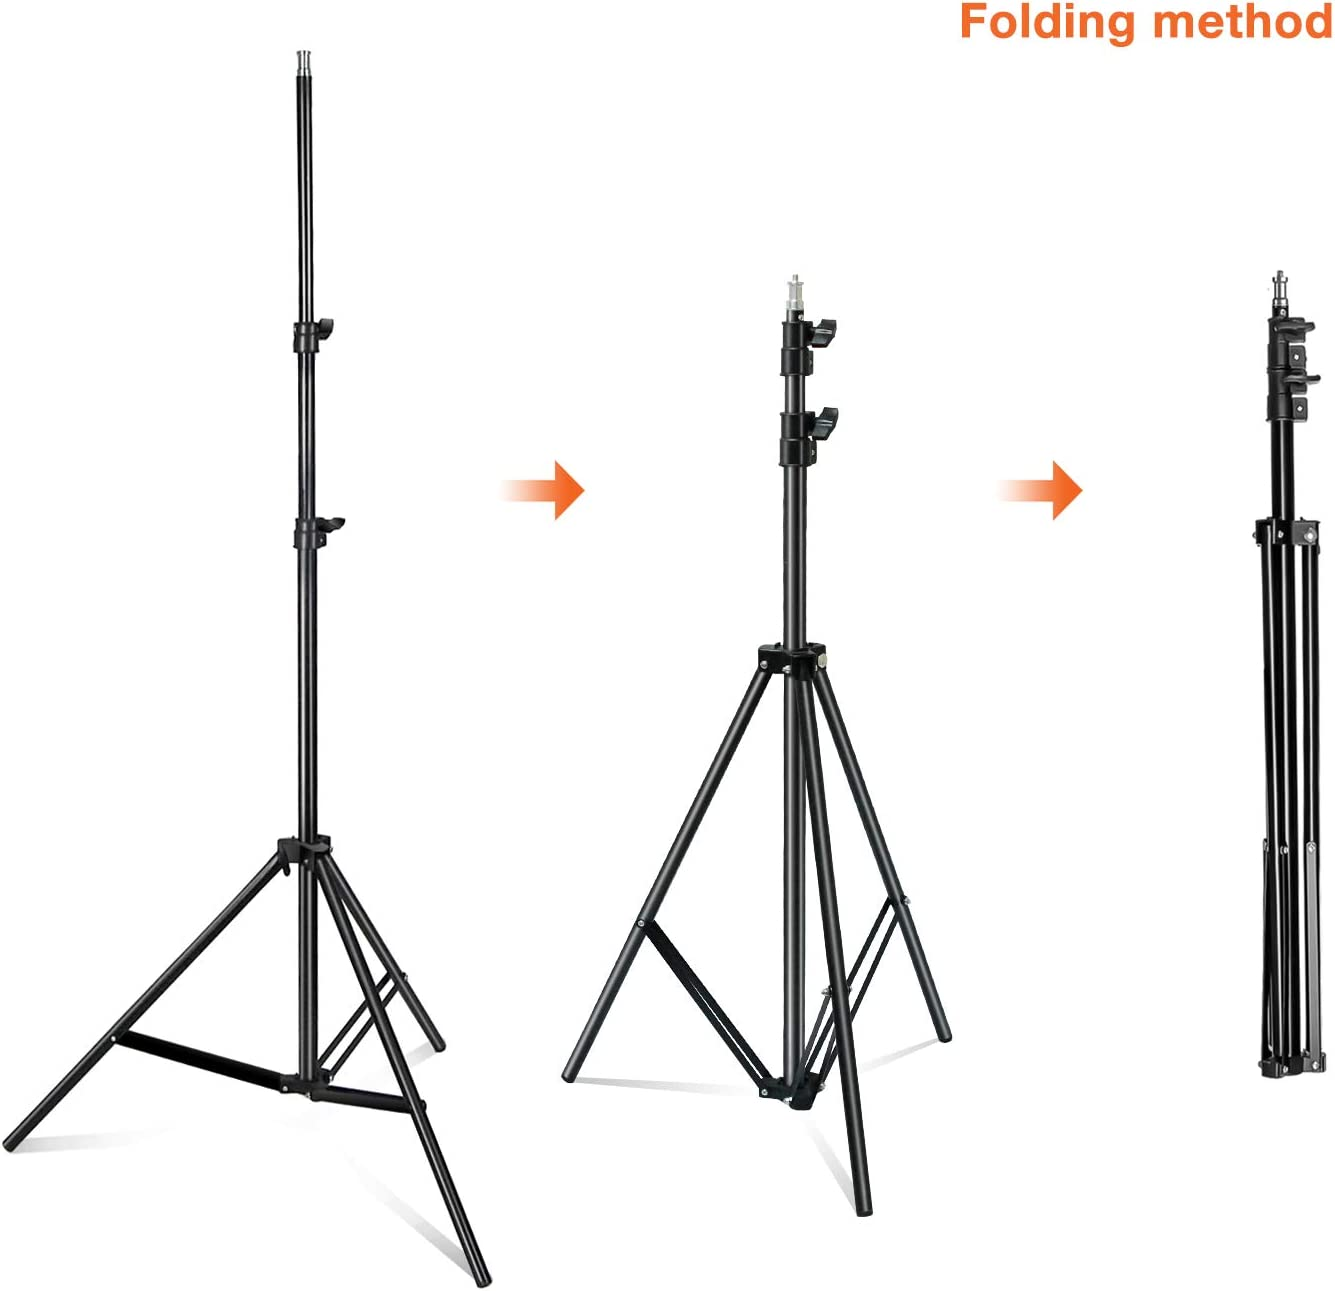 Limo Studio 2 Pack Photo Video Studio 86.5inch Light Stand Aluminum 3Legs Tight Locking System Light Stand for Photography Studio AGG2900